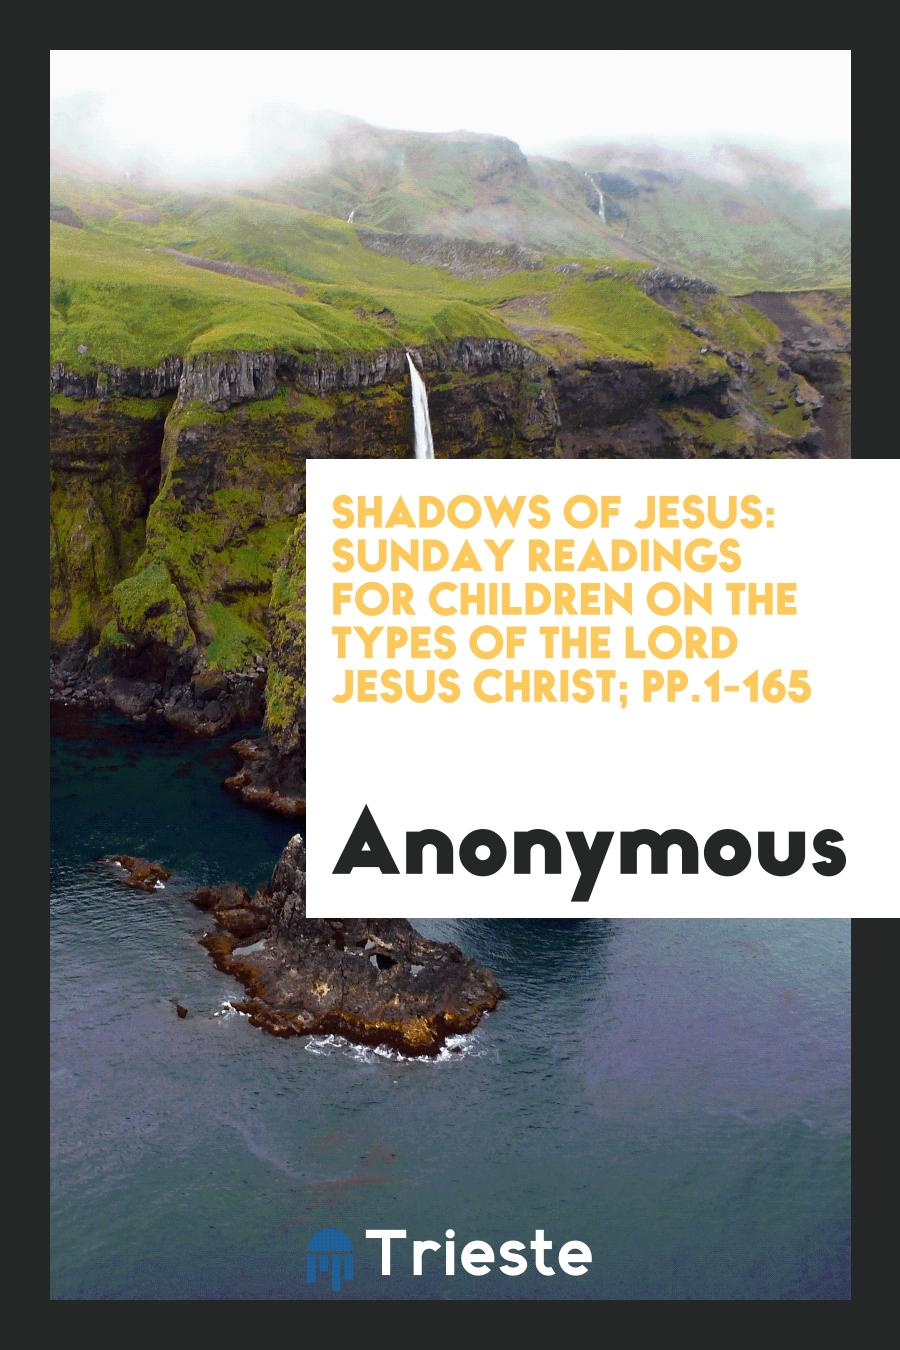 Shadows of Jesus: Sunday Readings for Children on the Types of the Lord Jesus Christ; pp.1-165